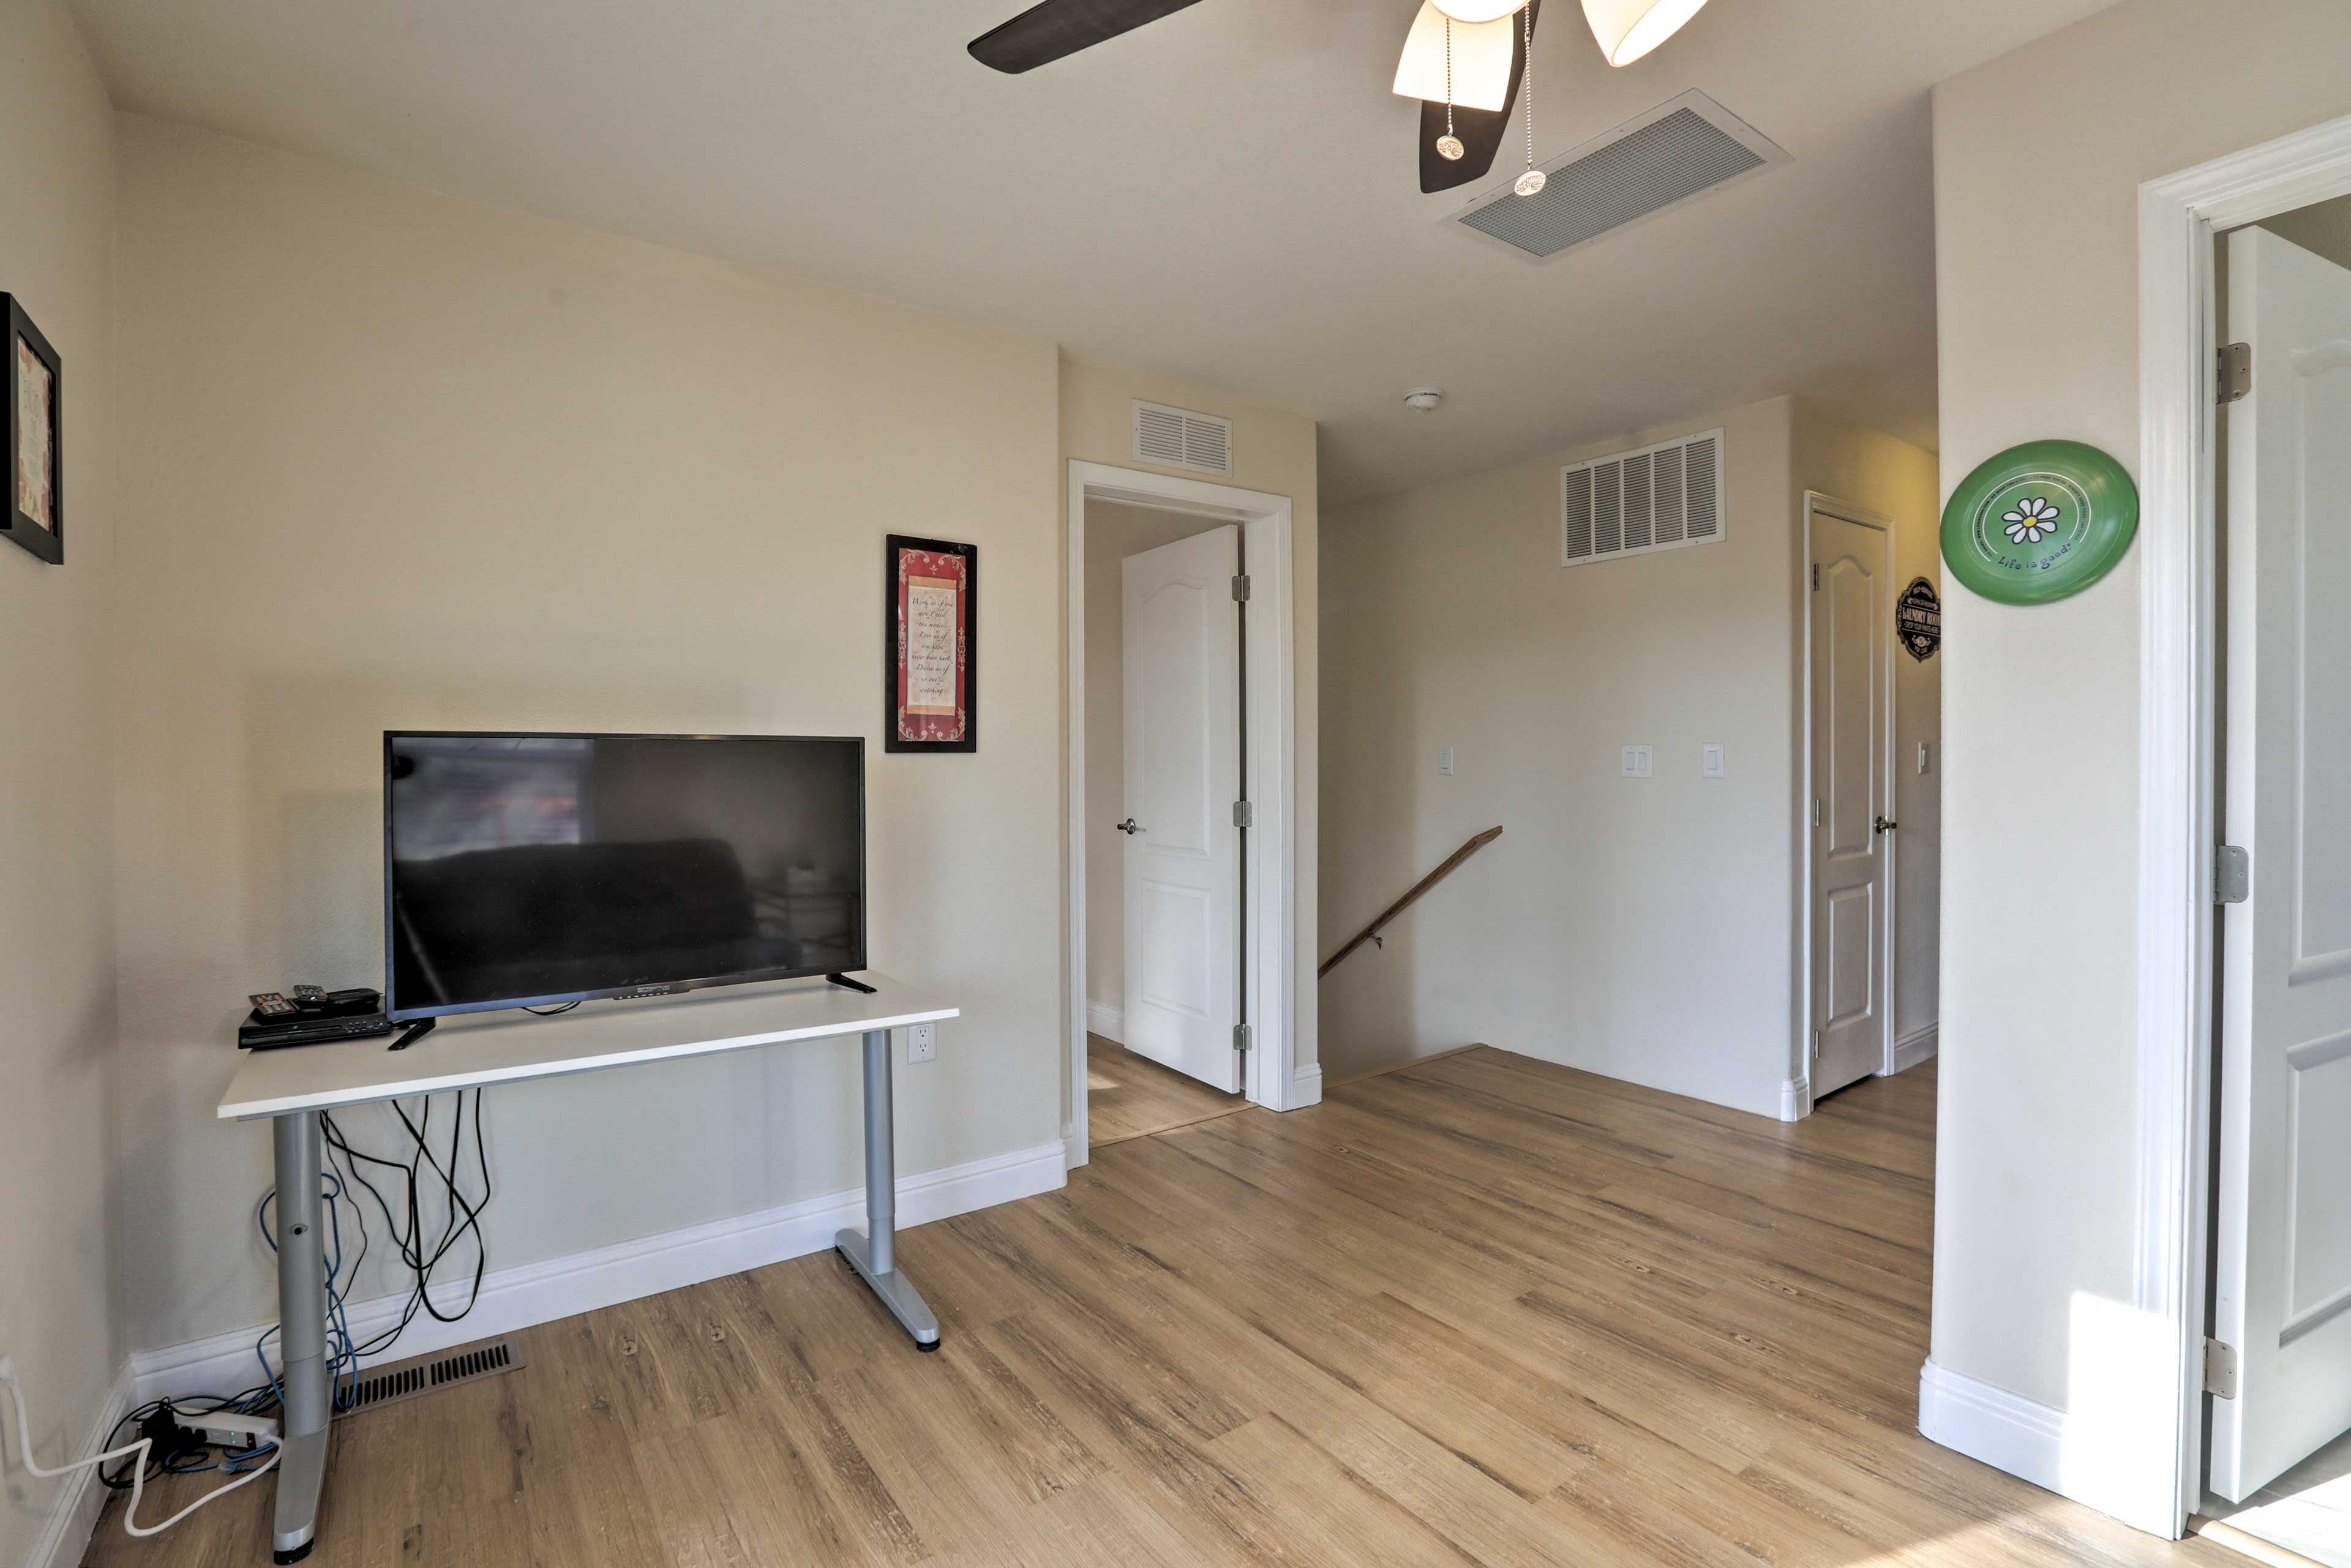 Upstairs, a seating area offers a flat-screen TV and futon.